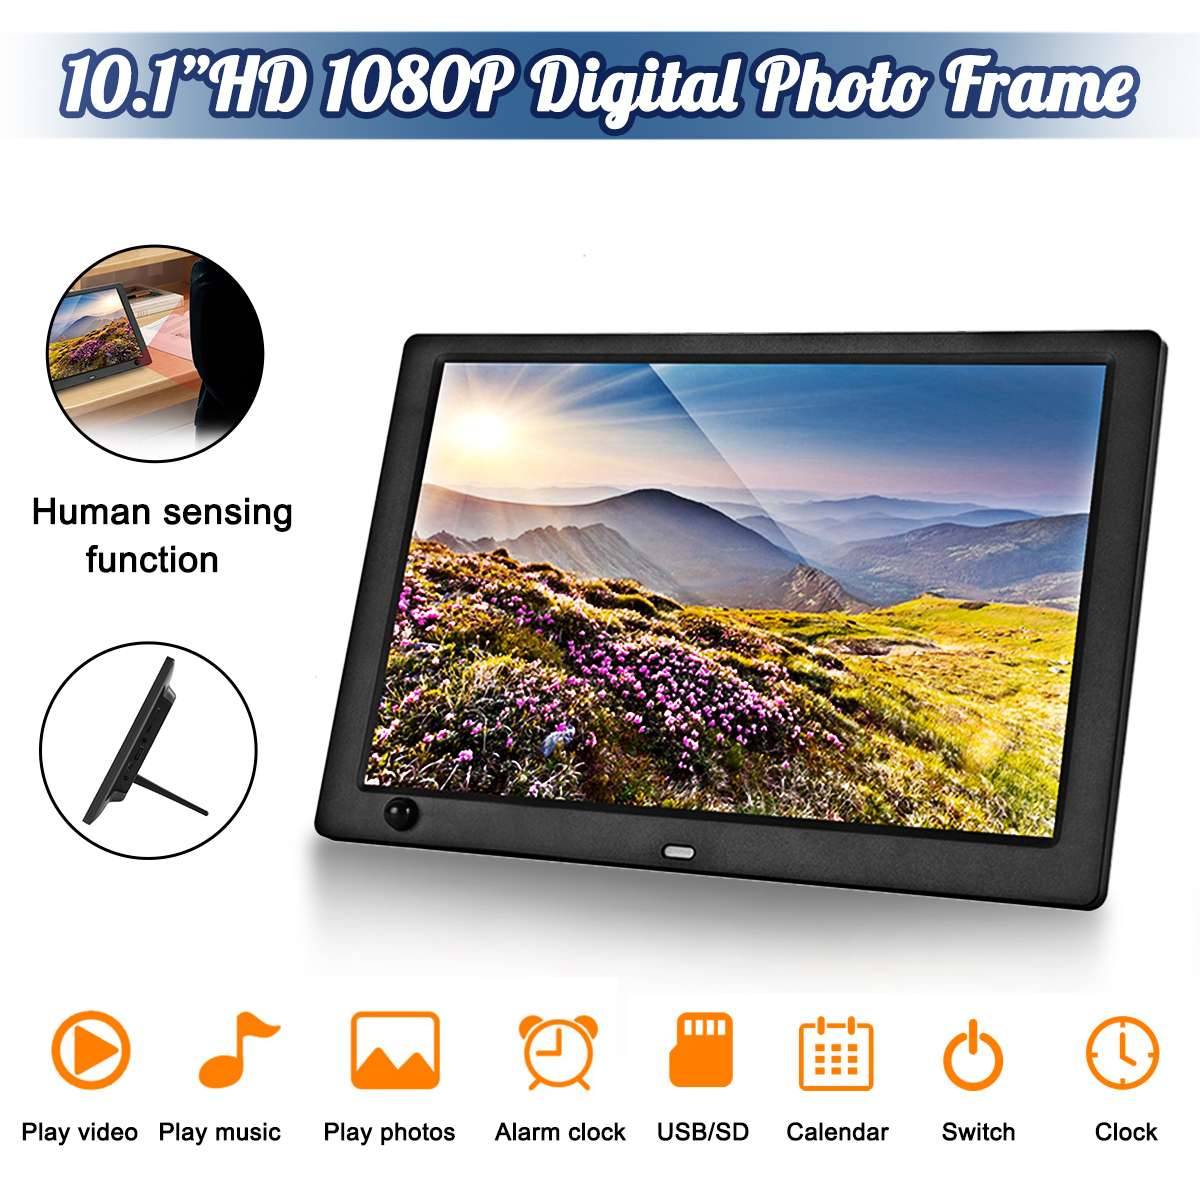 10.1 Inch HD Digital Photo Frame LED Screen Electronic Picture Album Music Movie with Human Sensing Function 1080P image